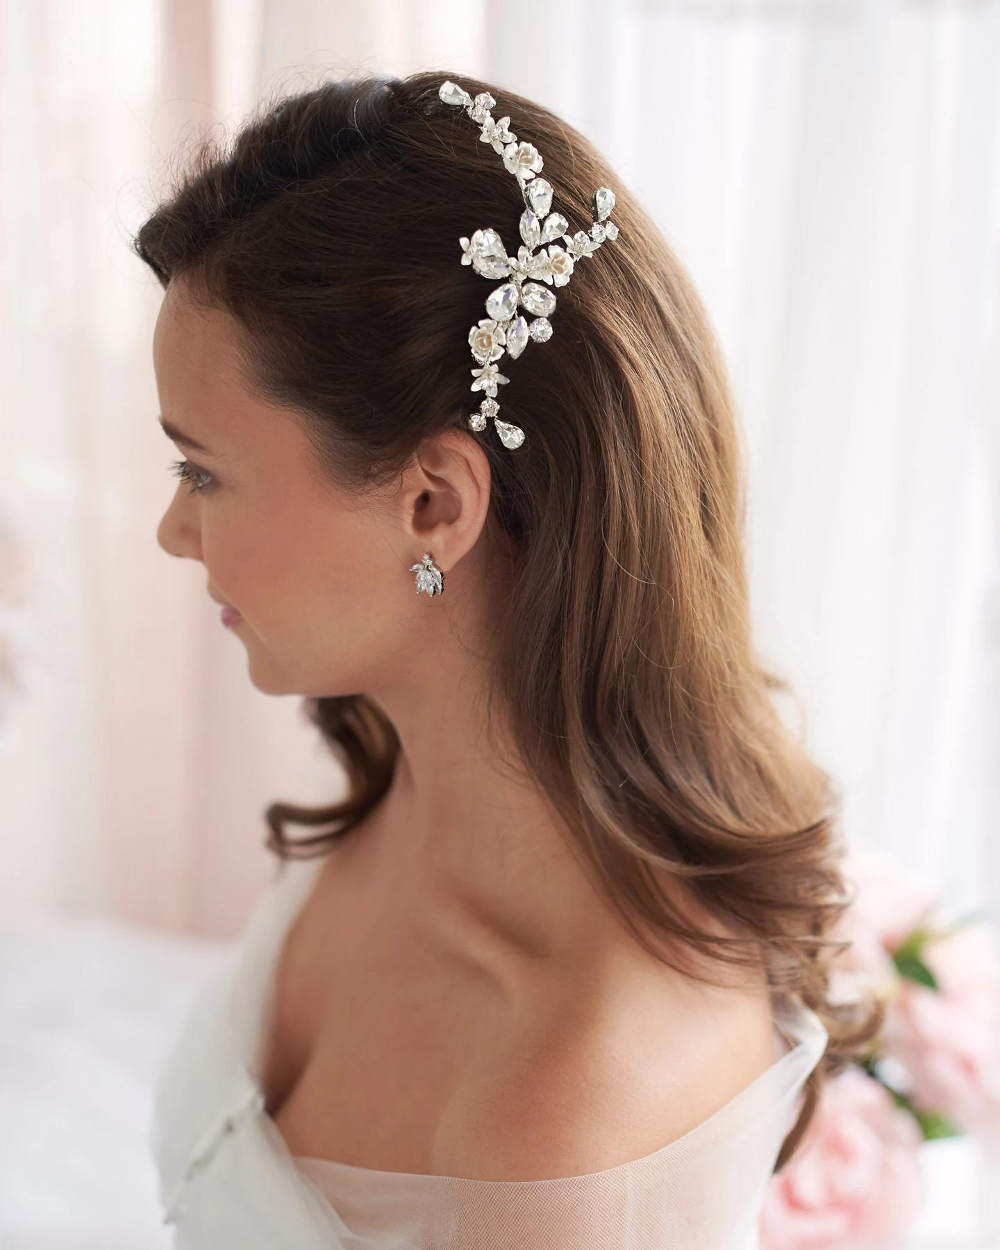 Hadley_Bridal wedding Comb with flowers and crystals